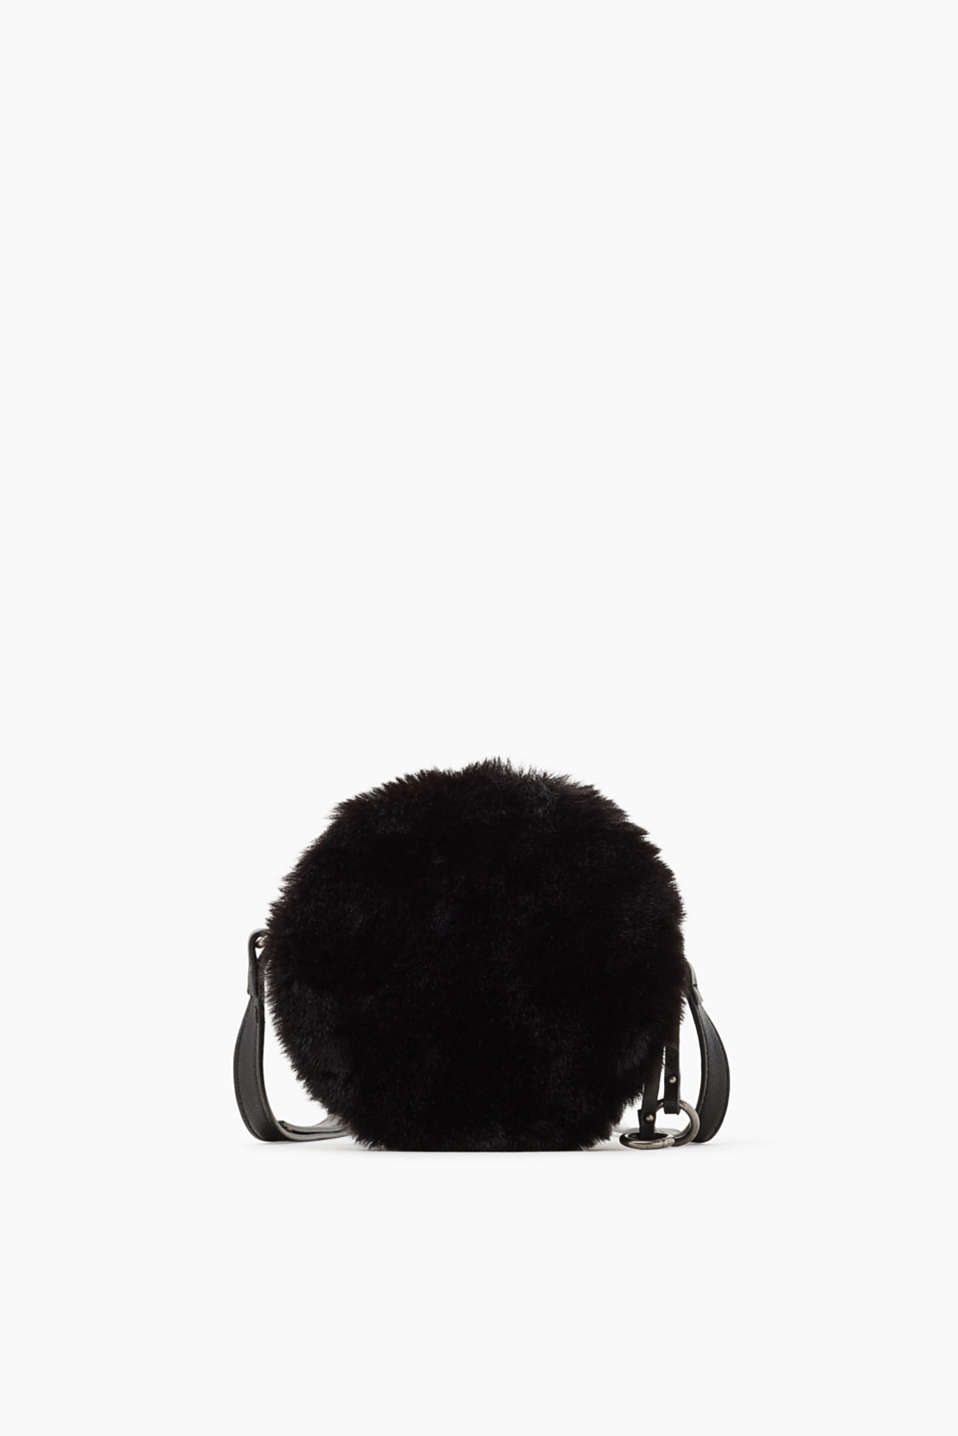 Your IT bag for the winter! The fantastic fusion of faux leather and fake fur makes this bag extremely eye-catching.